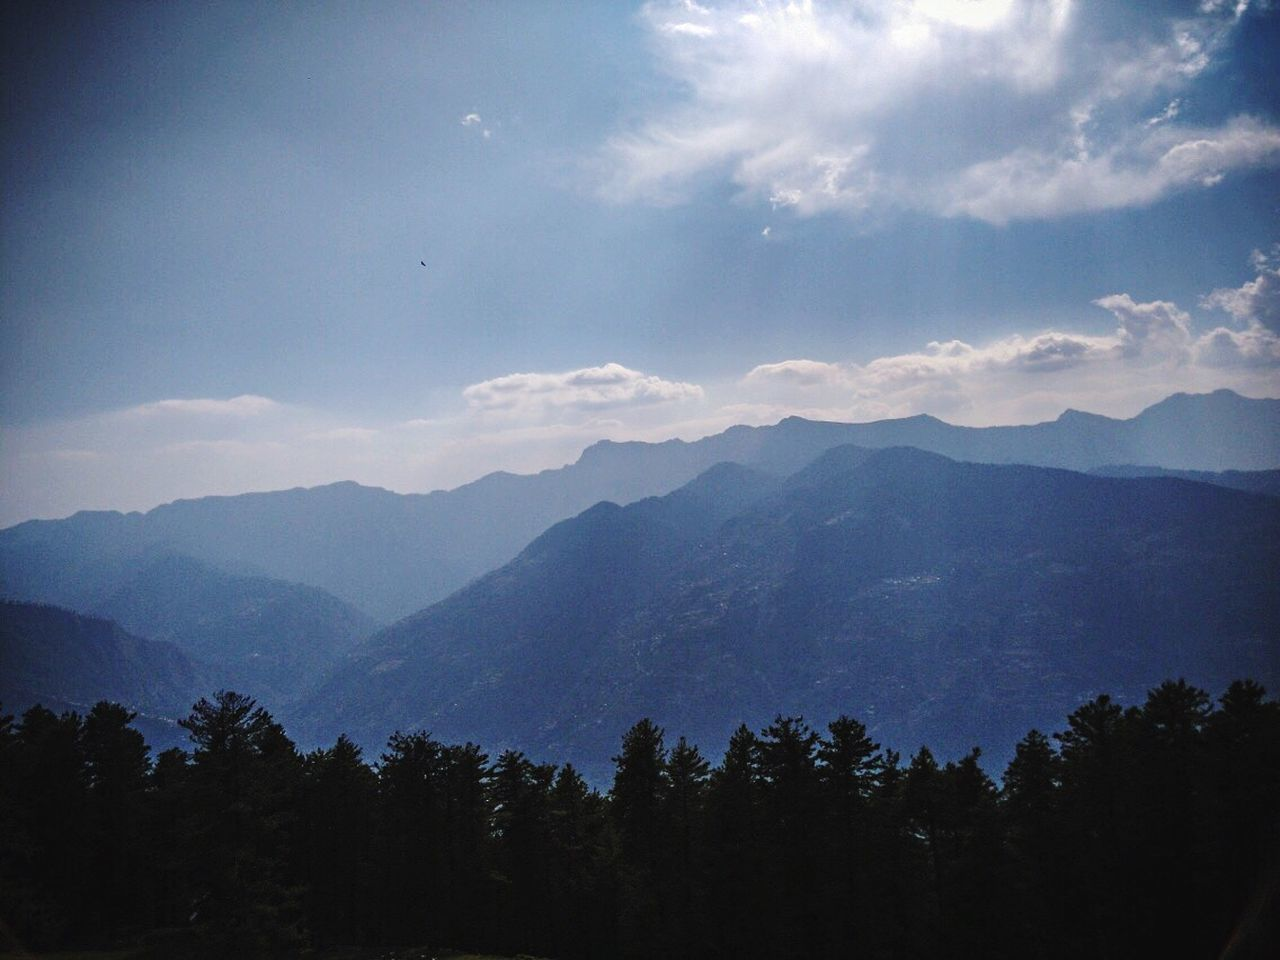 mountain, nature, beauty in nature, landscape, tranquility, sky, tranquil scene, scenics, tree, silhouette, forest, no people, outdoors, day, mountain range, freshness, range